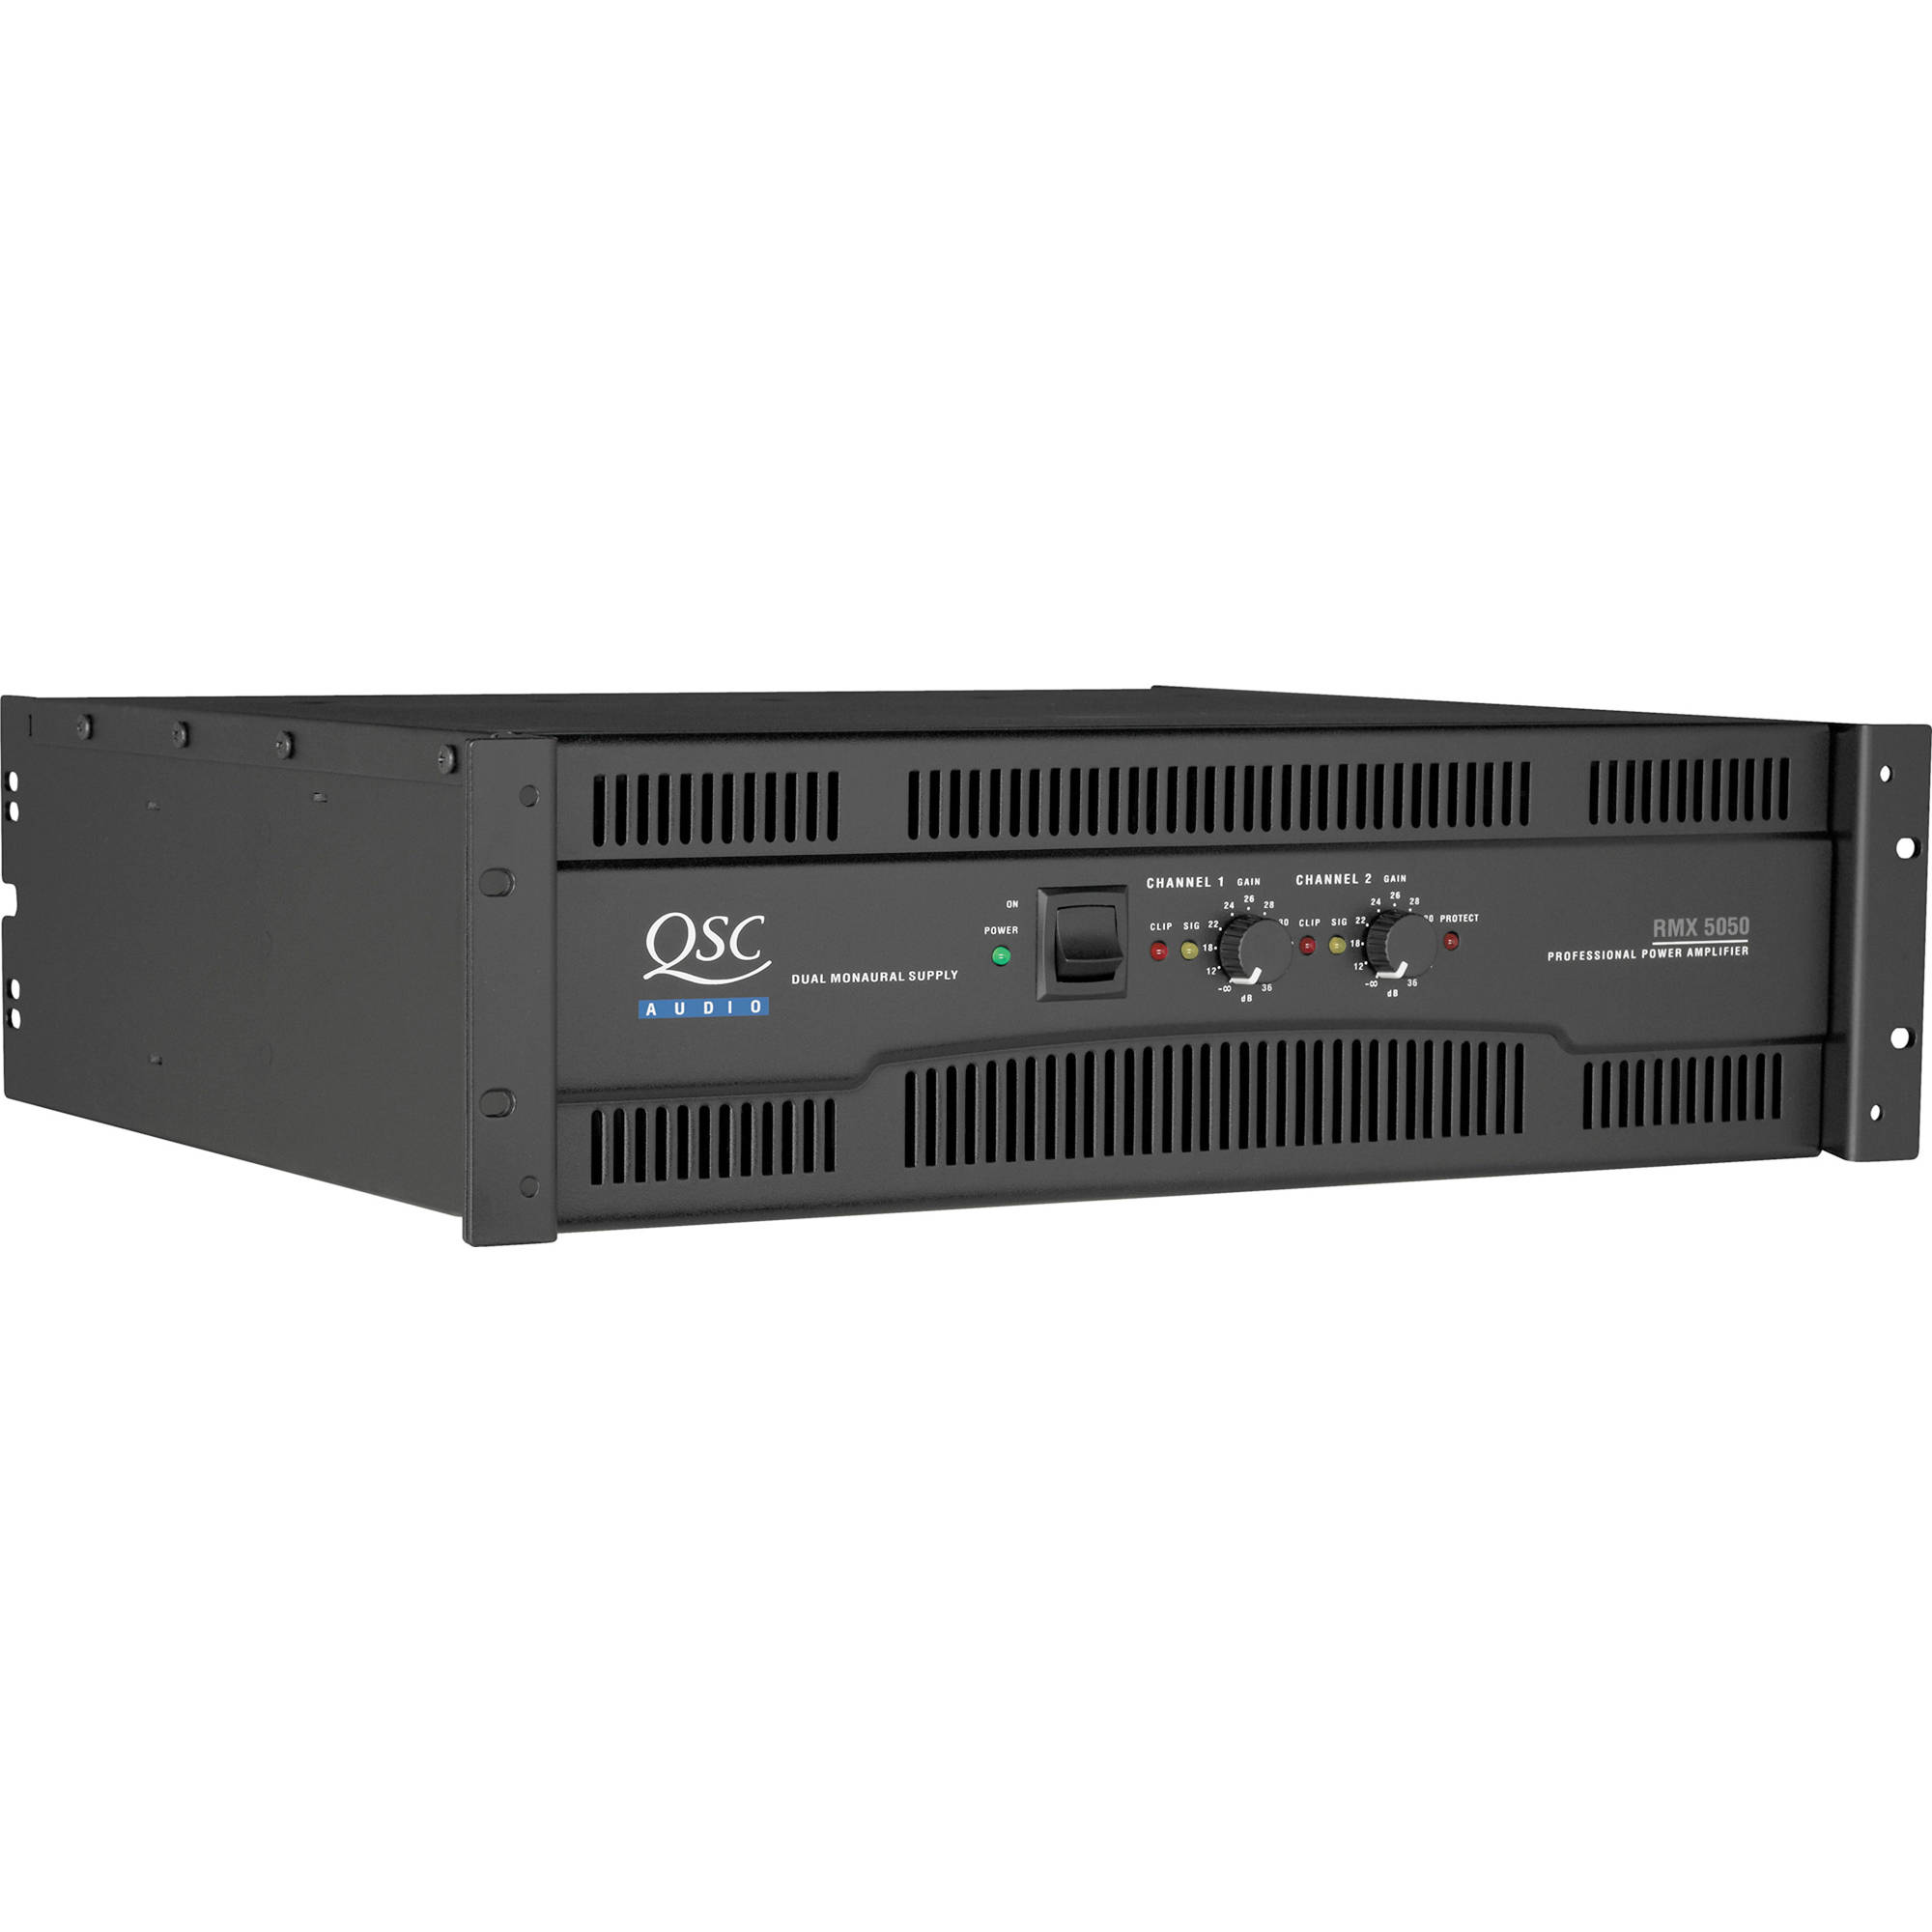 Qsc Rmx 5050 2 Channel Power Amplifier Rmx5050 Bh Photo Video Loudspeaker Protection And Muting 1050w Per Into 8 Ohms